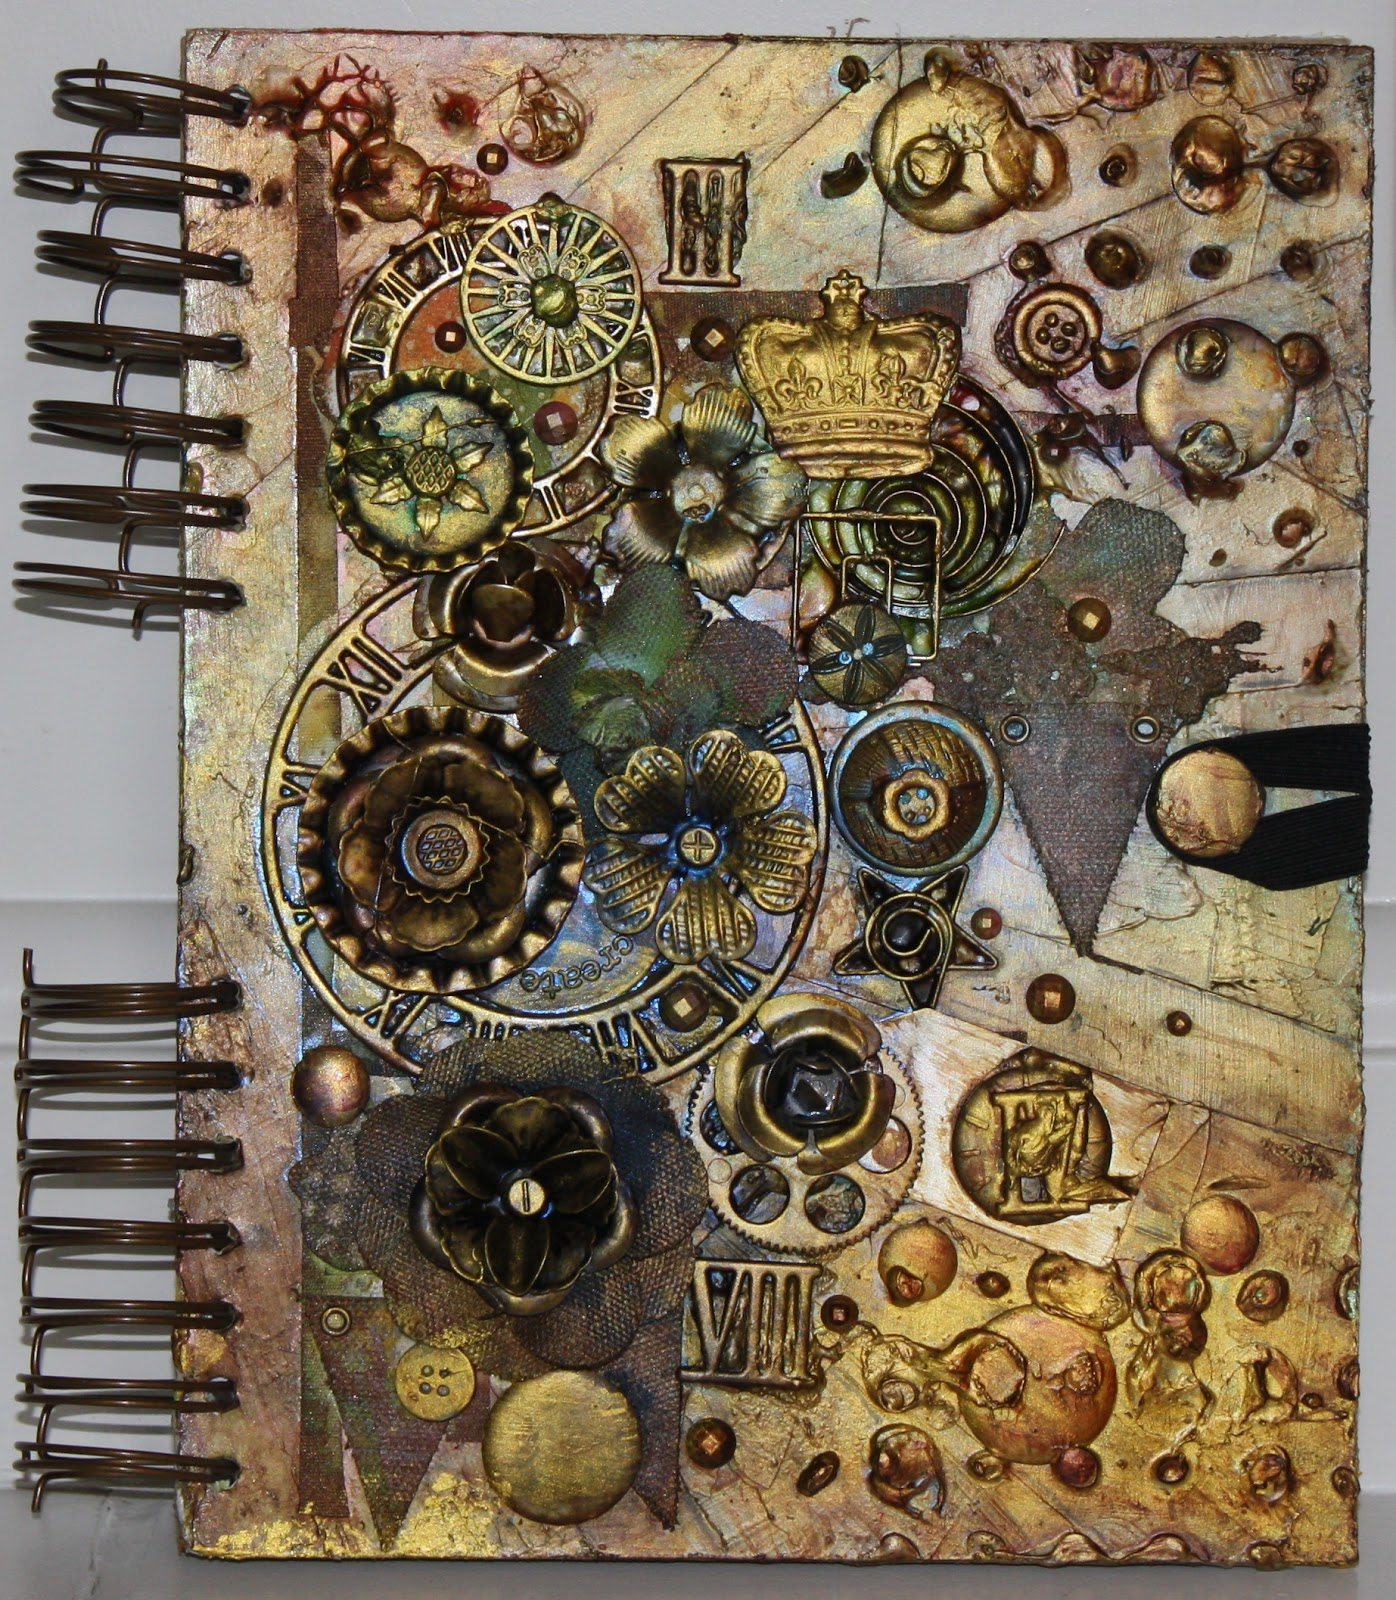 mixed media projects Mixed media projects are sweeping the beading world the term 'mixed media' means the pieces are made from a variety of materials, such as shrink plastic, paper beads, macrame knots, and more.